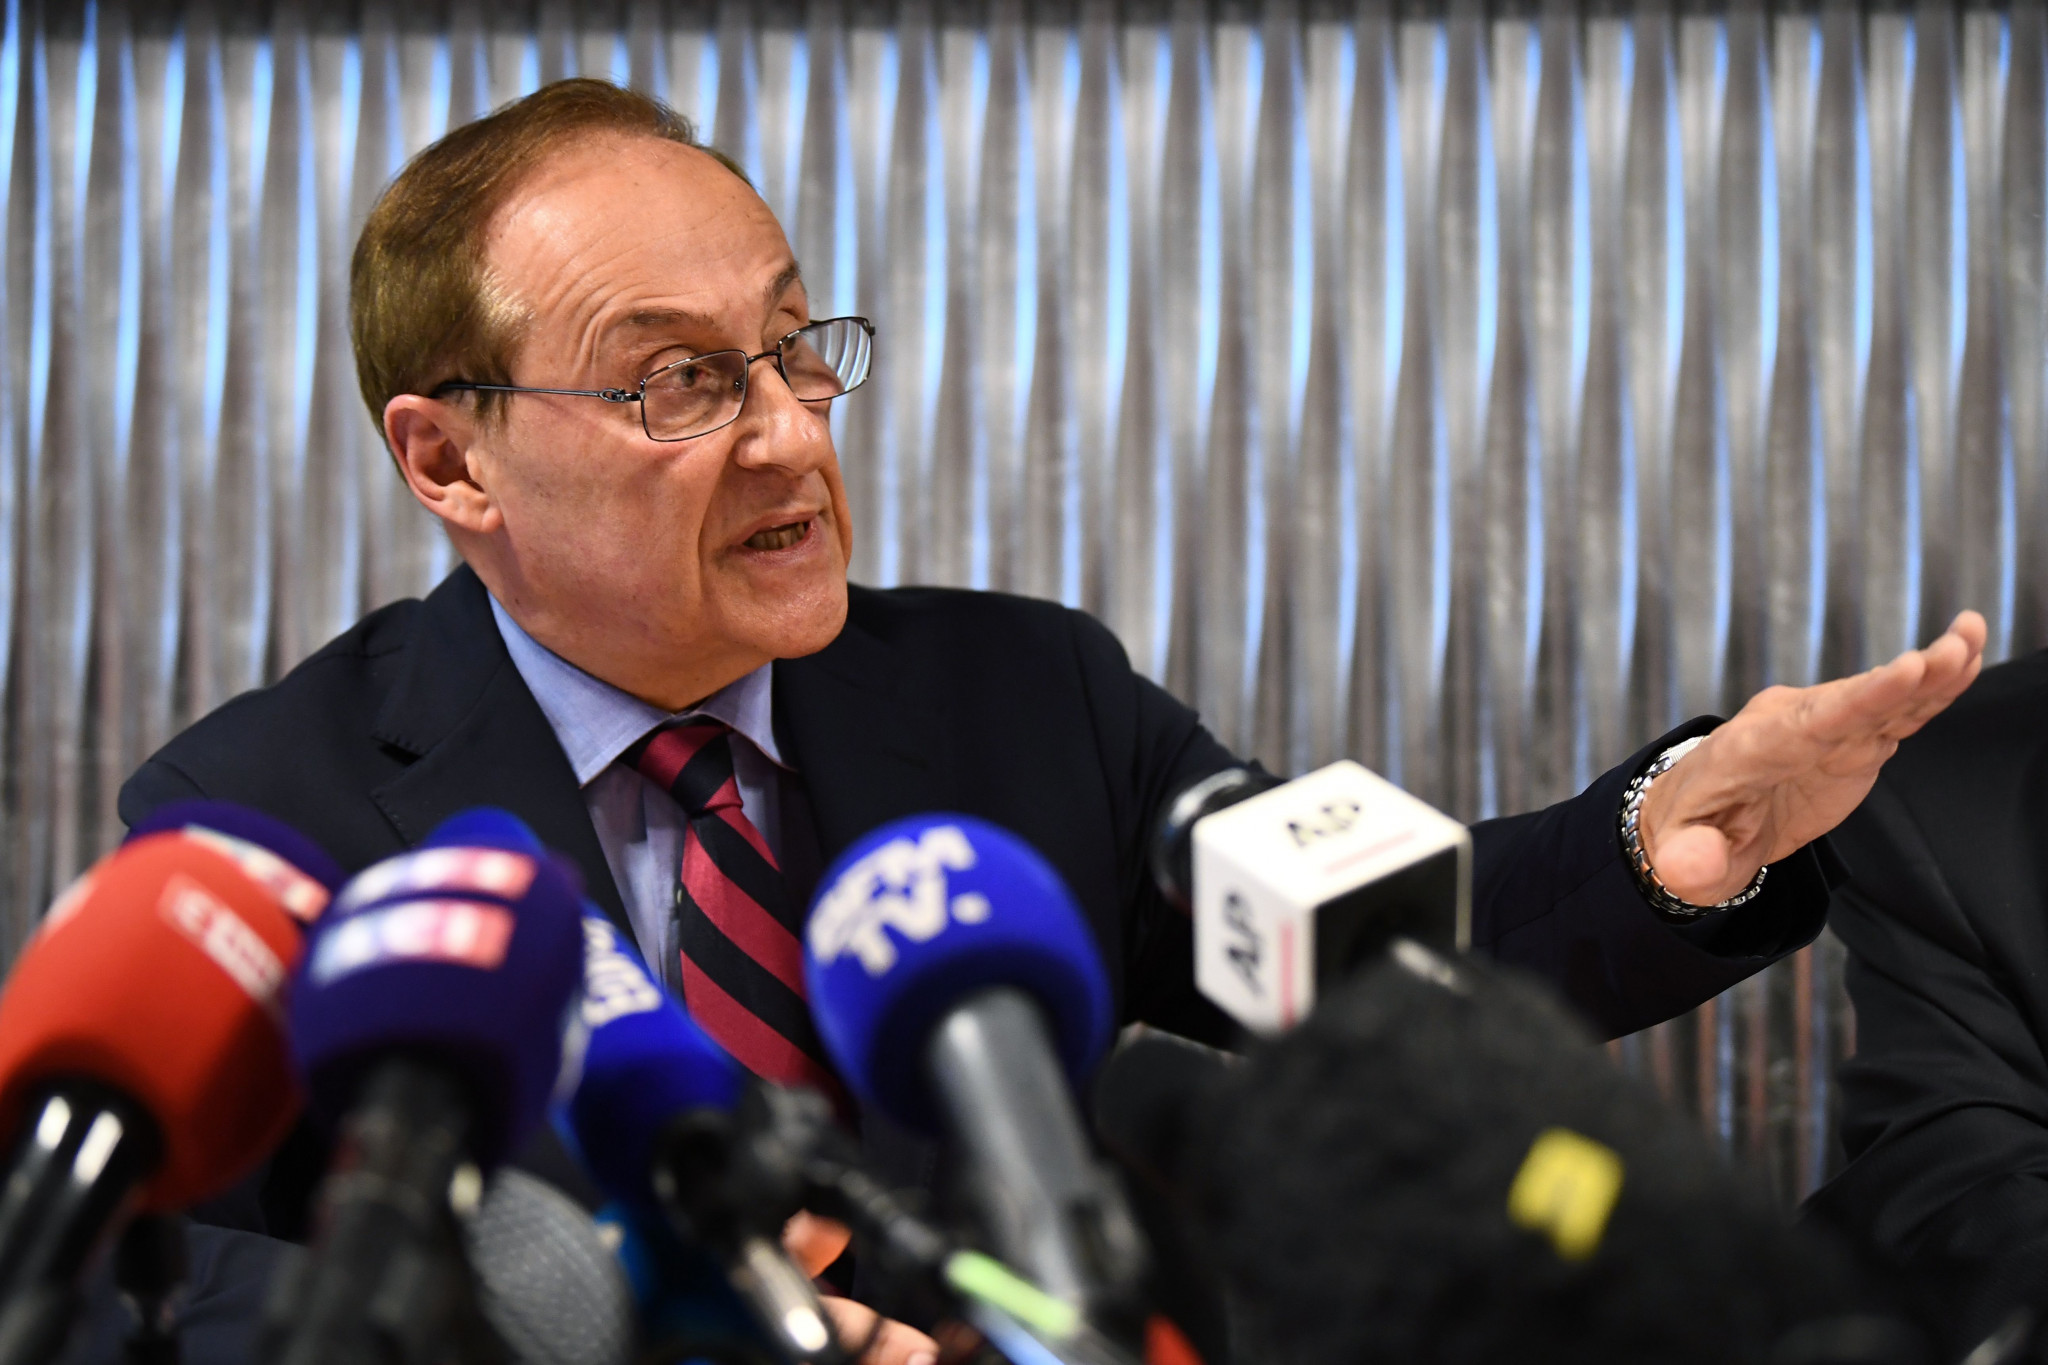 Under-fire Gailhaguet refuses to resign from French National Olympic and Sports Committee role